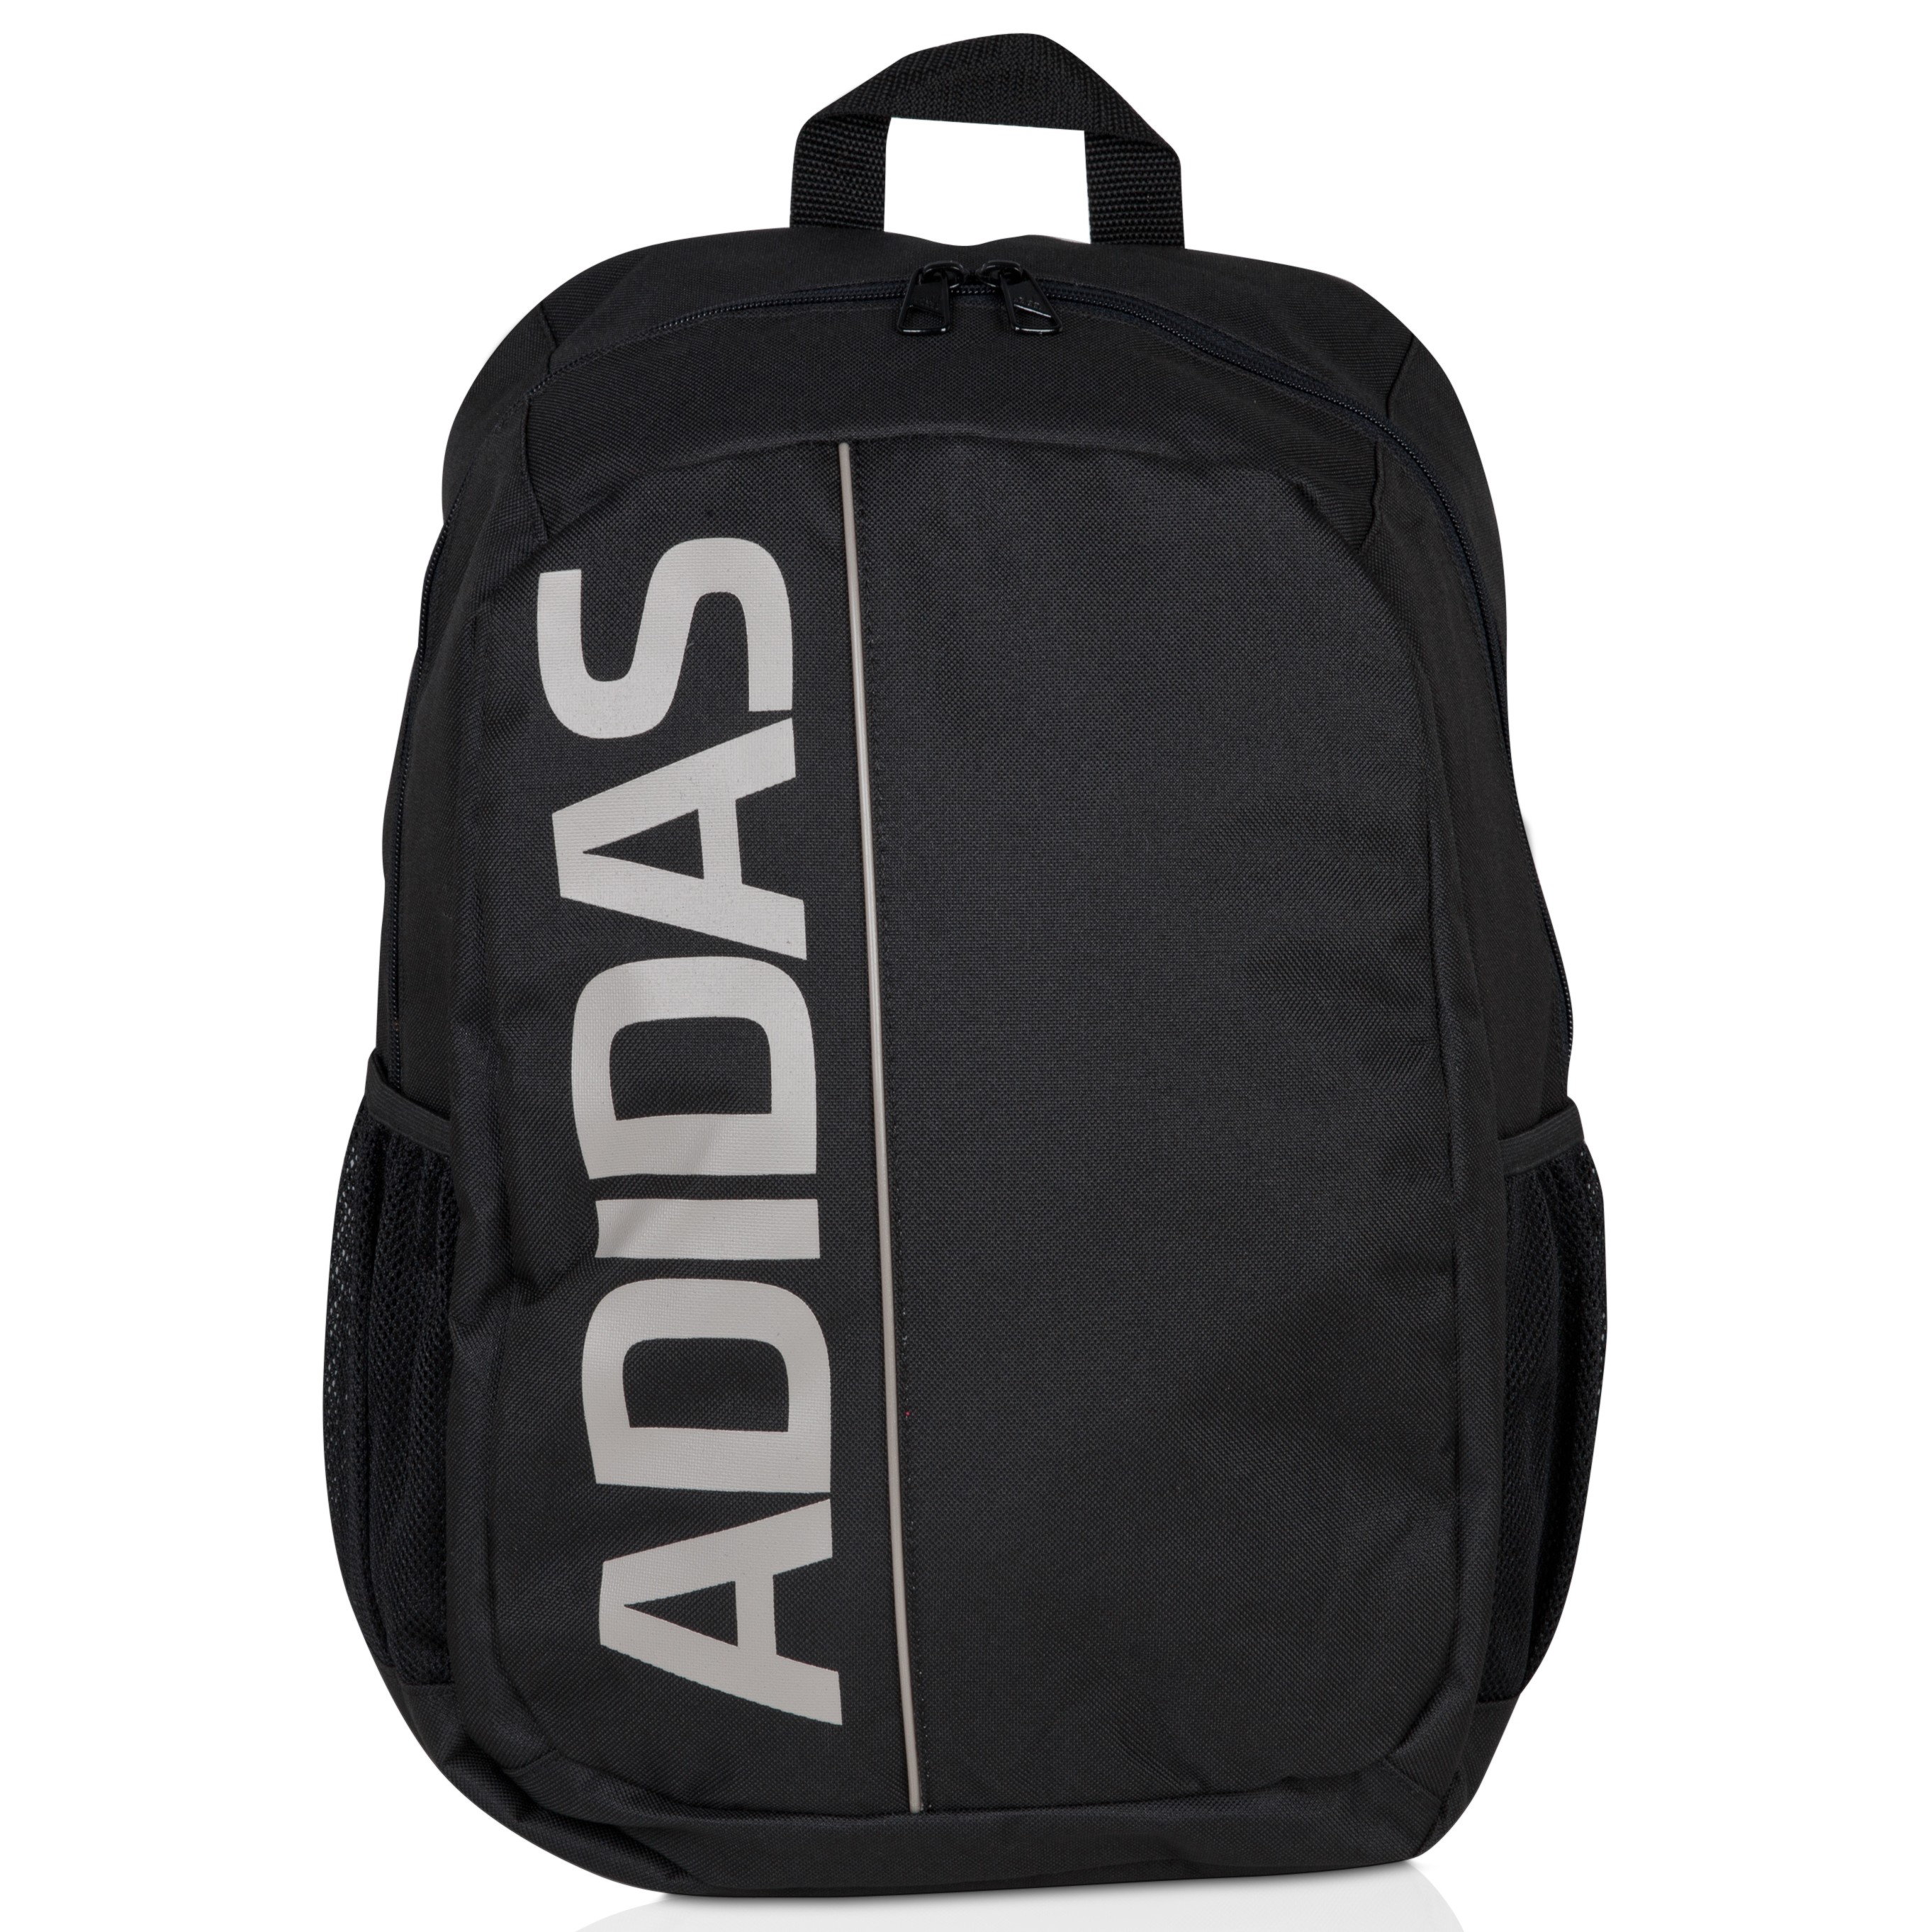 Adidas Linear Essentials Backpack - Black